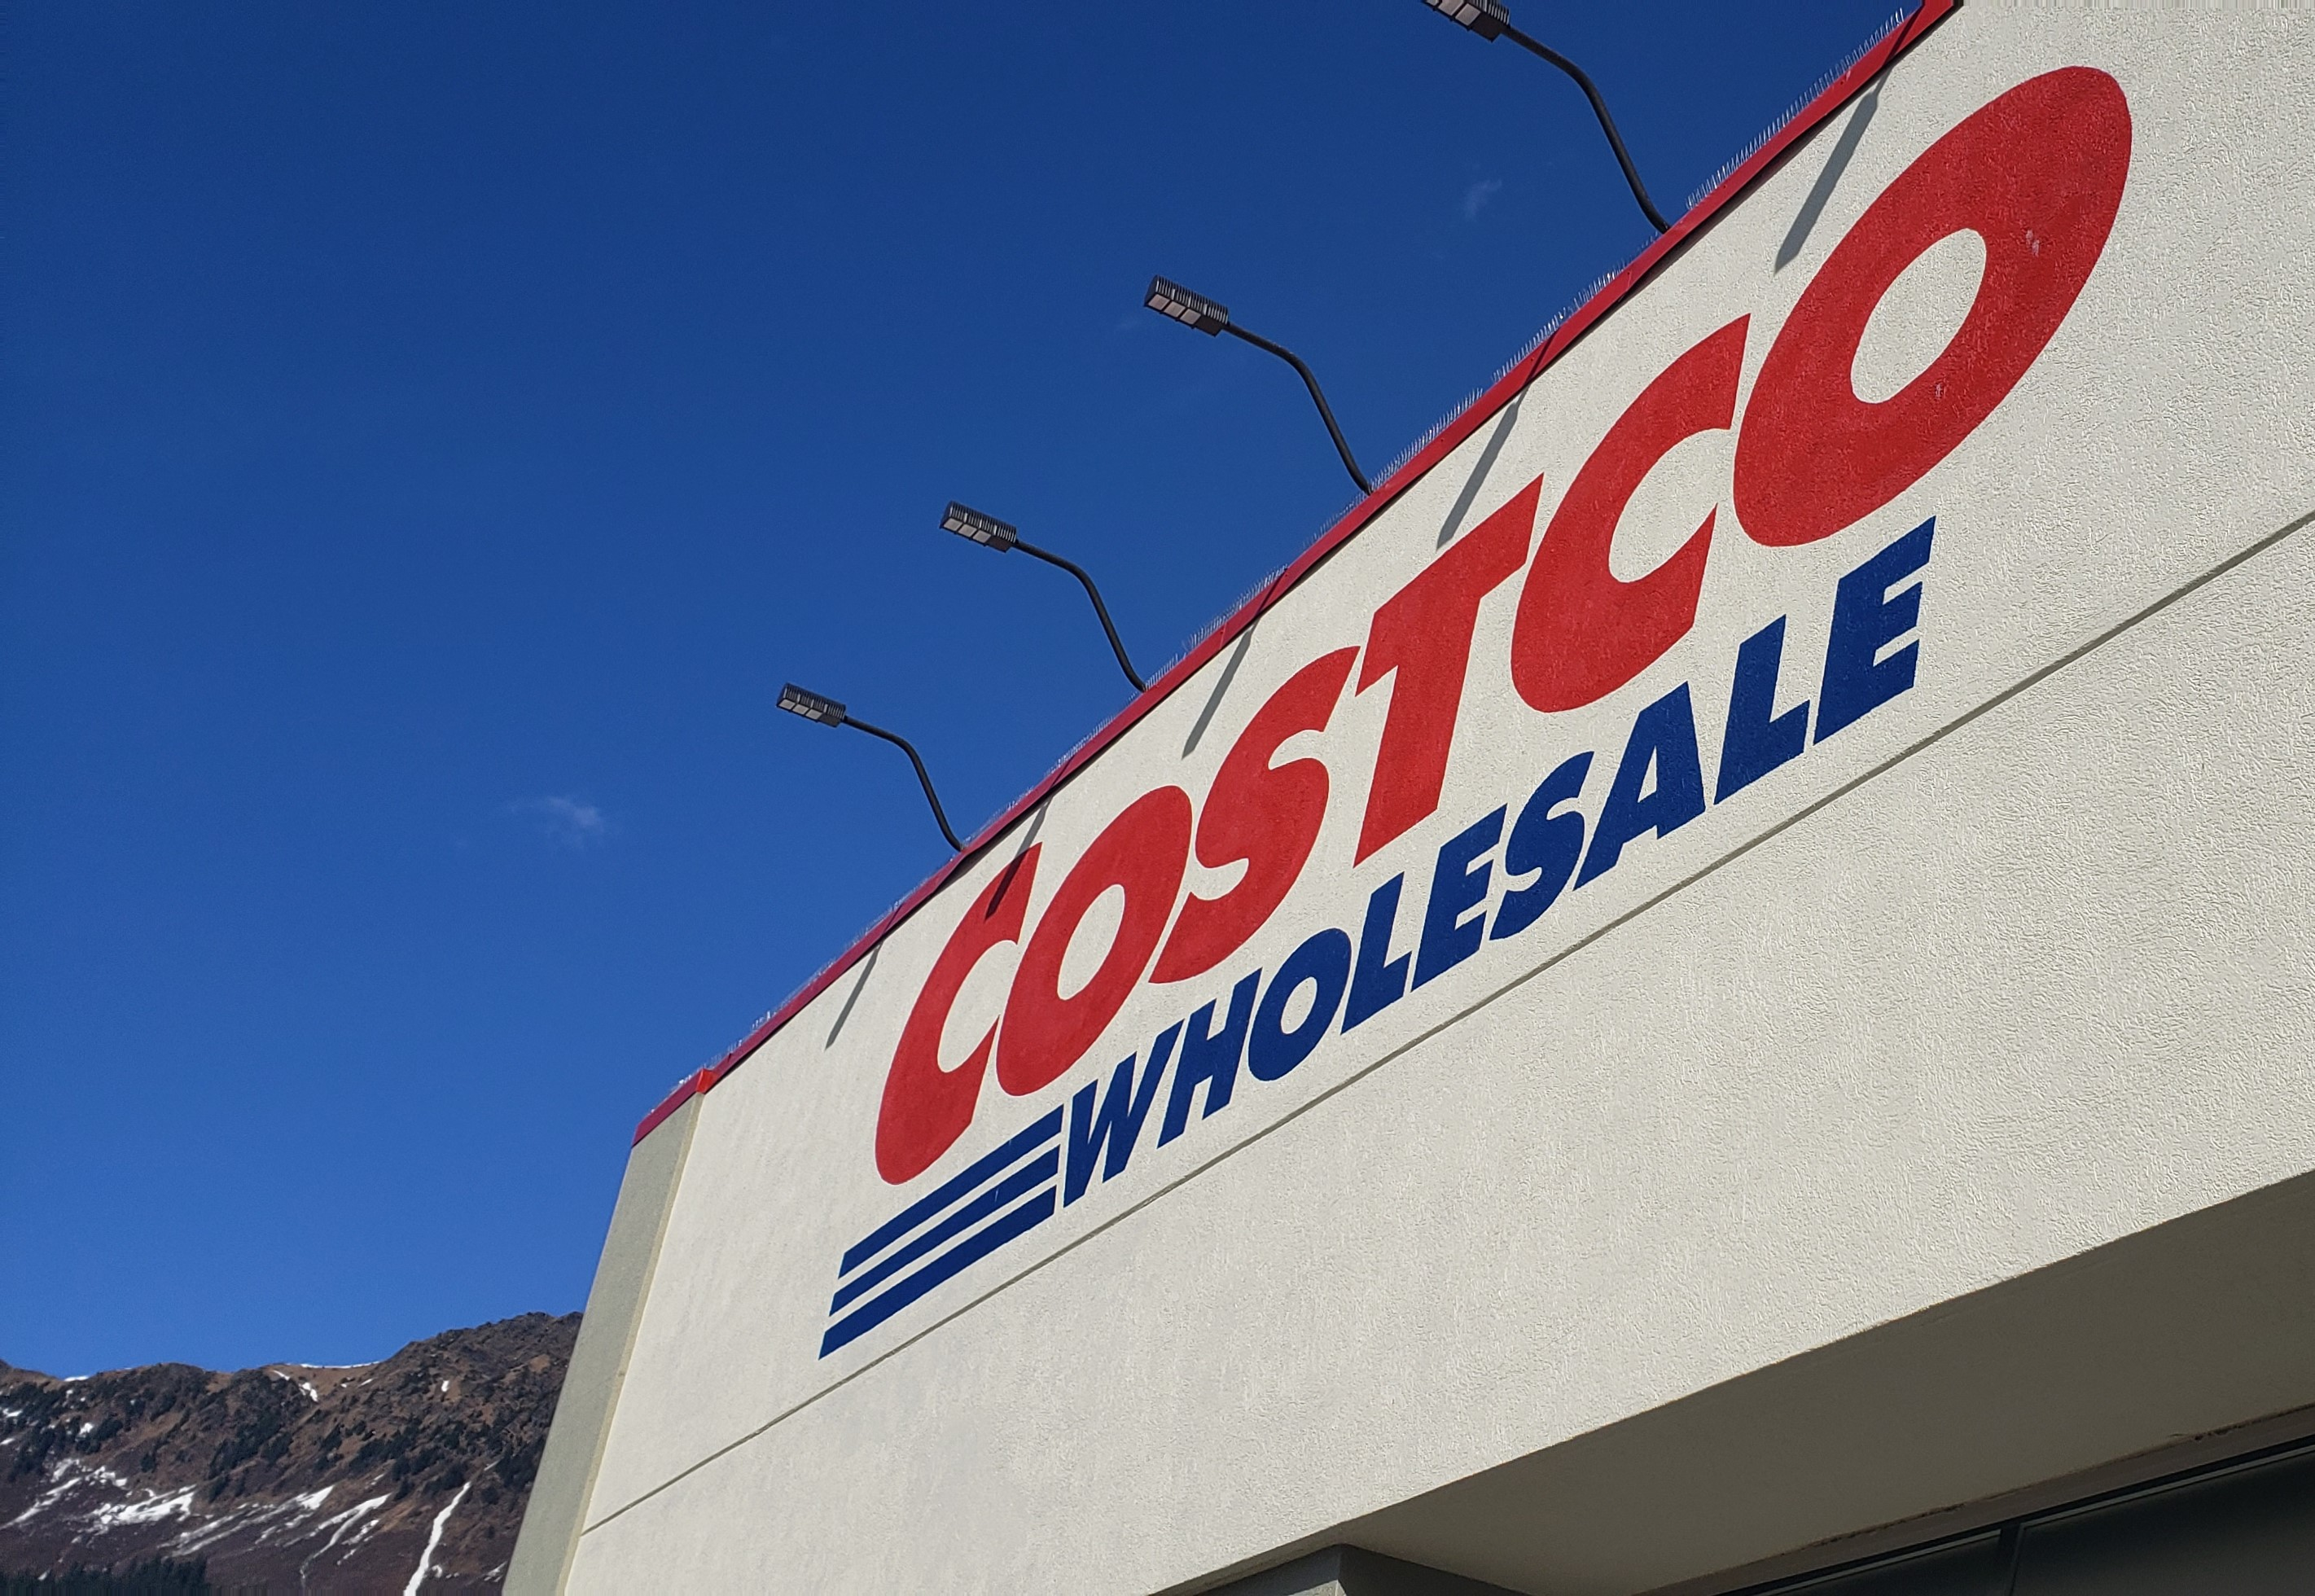 Costco Graduation Announcements 2020.Does Juneau Really Have The Smallest Costco In The World